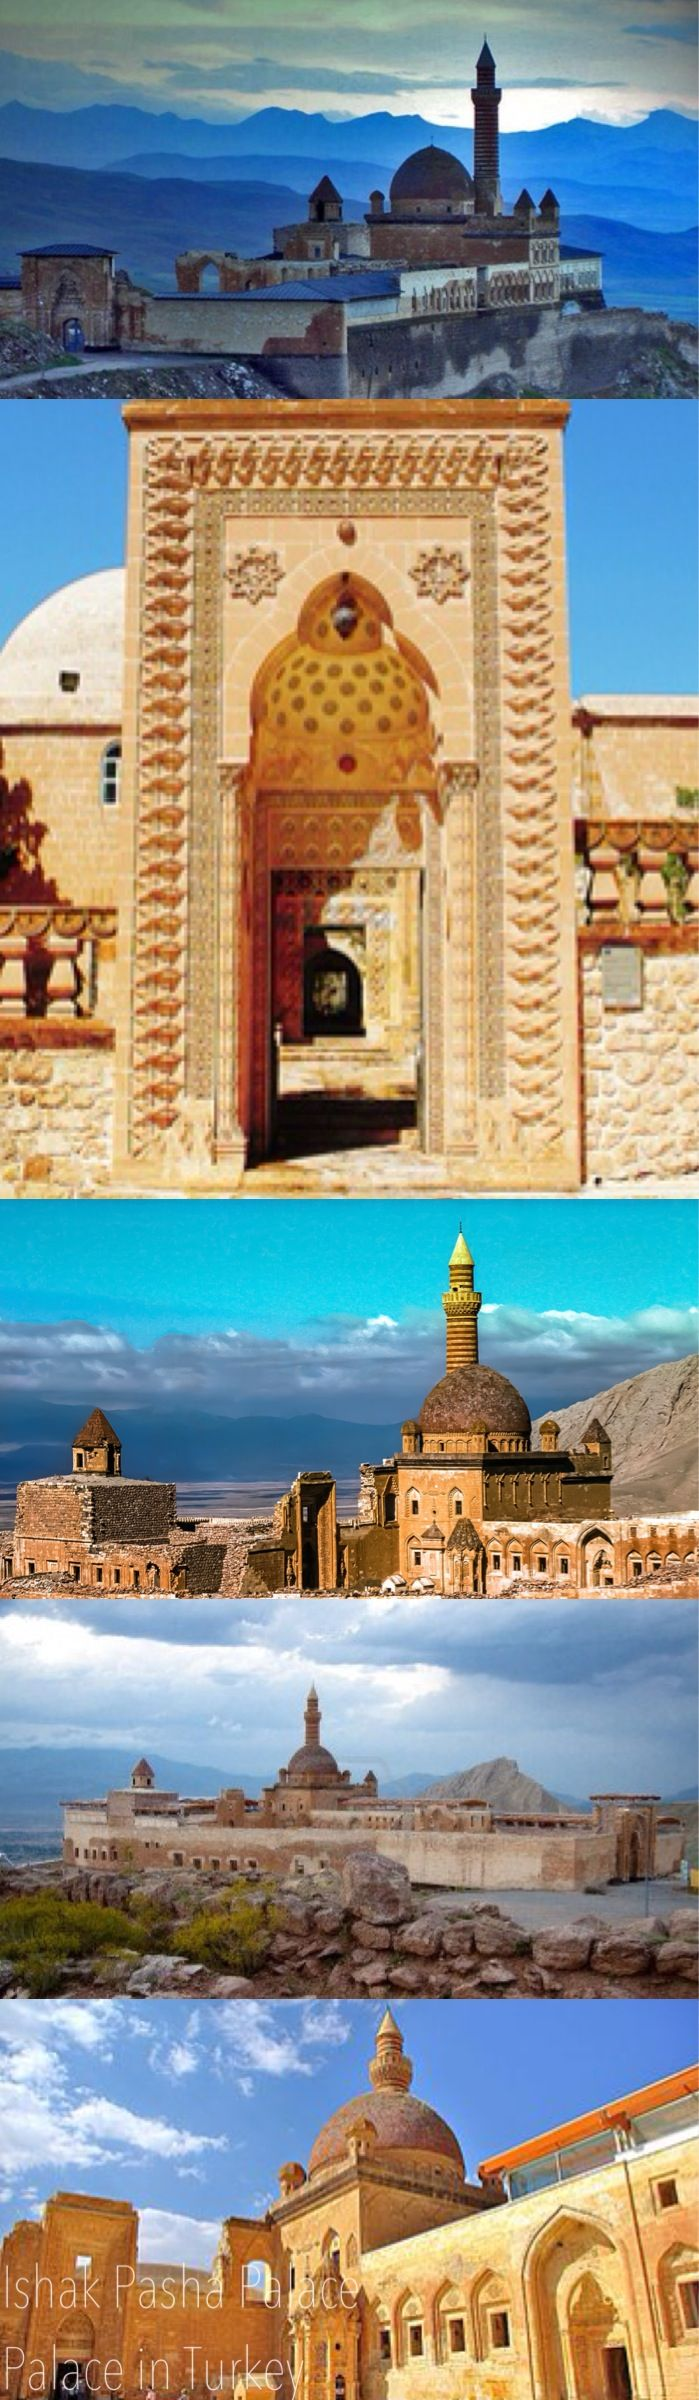 Ishak Pasha Palace, Turkey